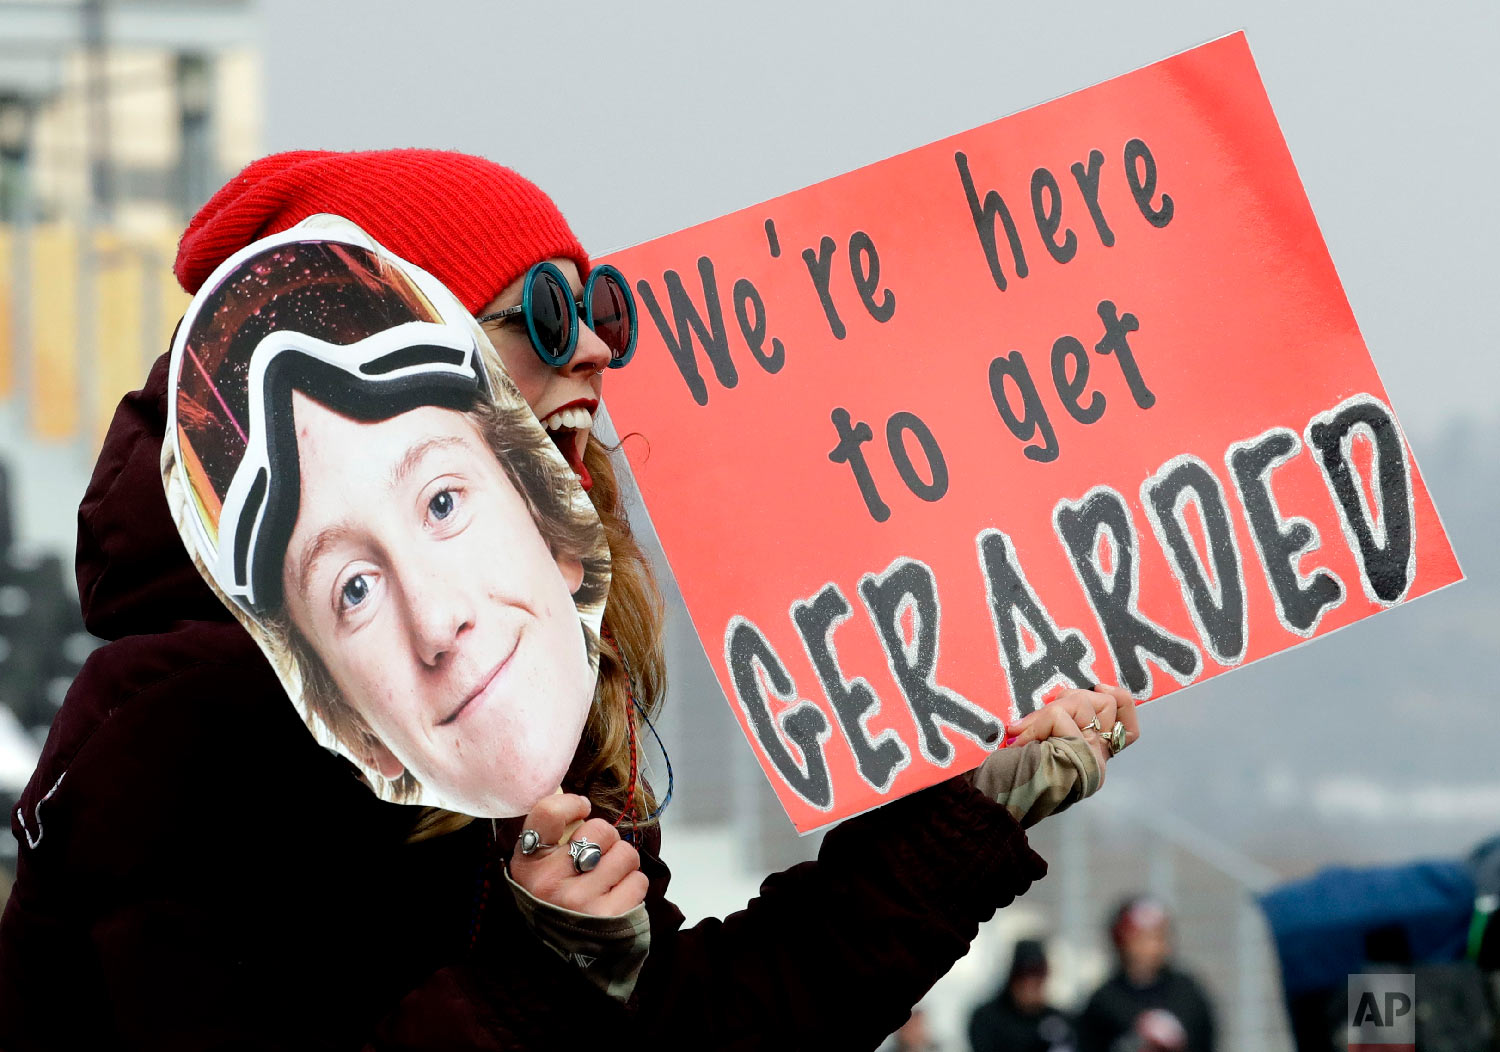 A fan cheers for RedmondGerard, of the United States, cheers during the men's slopestyle qualifying at Phoenix Snow Park at the 2018 Winter Olympics in Pyeongchang, South Korea, Saturday, Feb. 10, 2018. (AP Photo/Lee Jin-man)